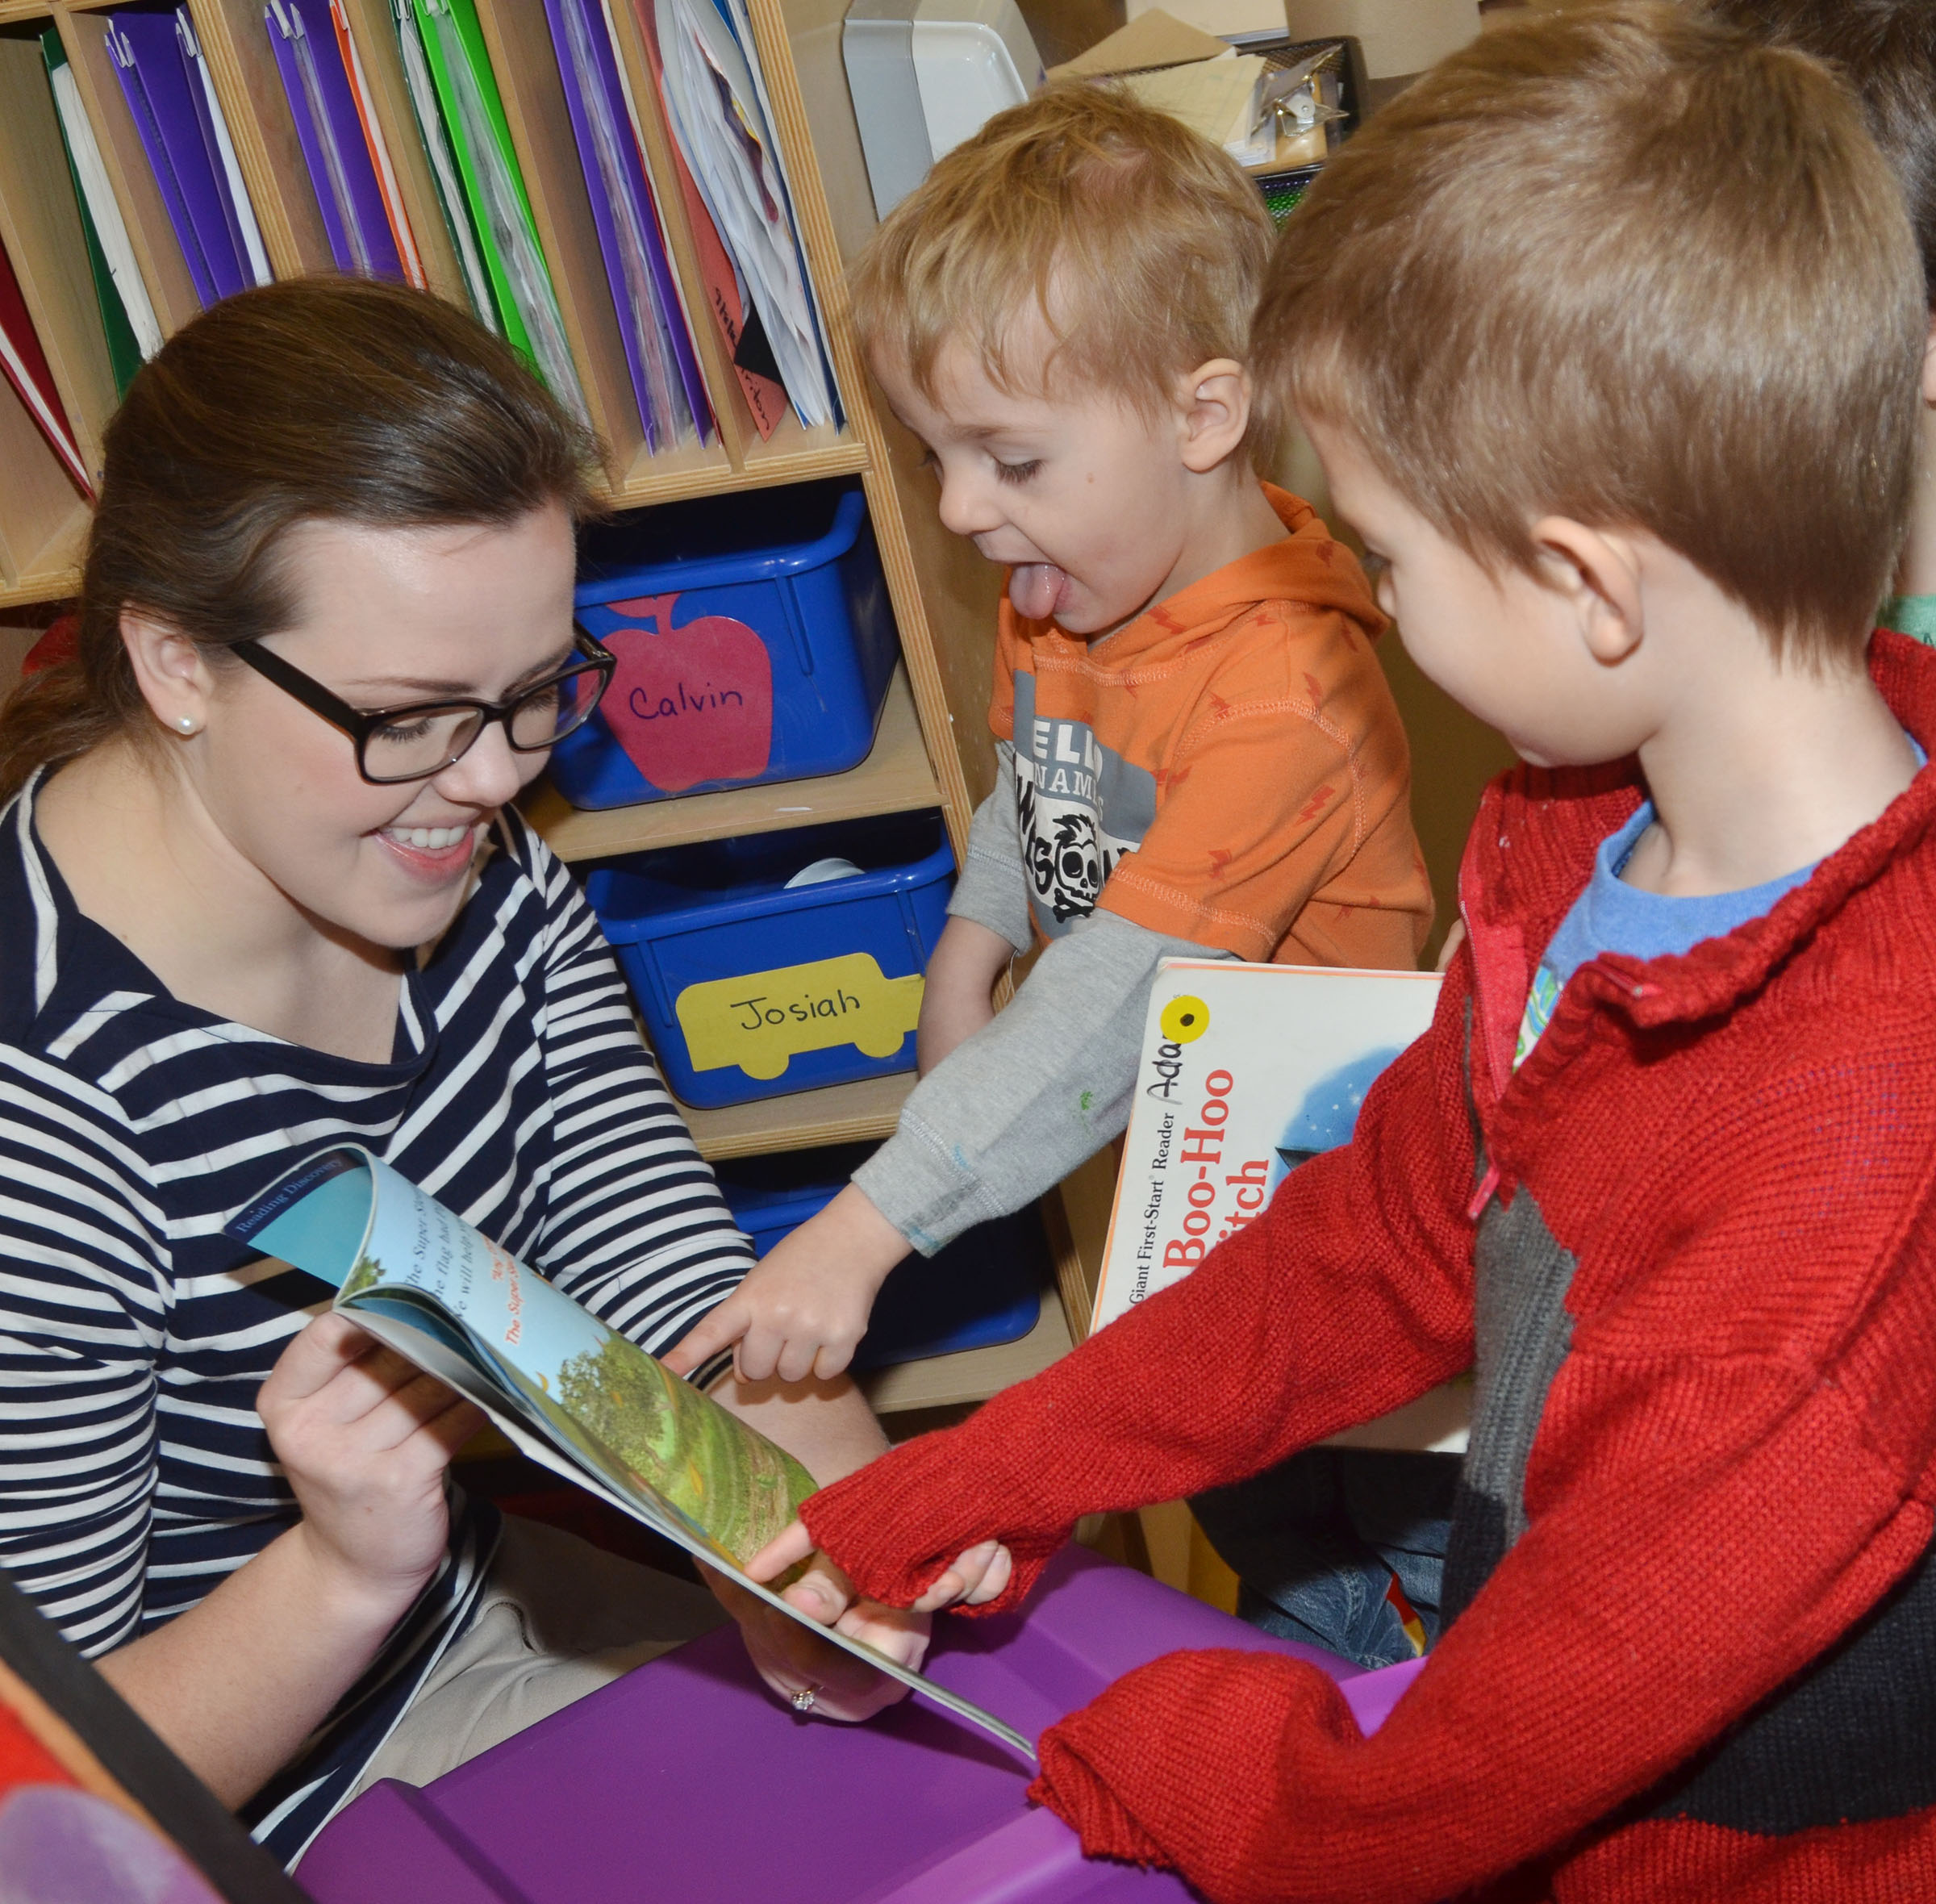 Campbellsville University education student Amanda Hamilton reads with CES preschool students Chase Russell, at left, and Andrew Stout.